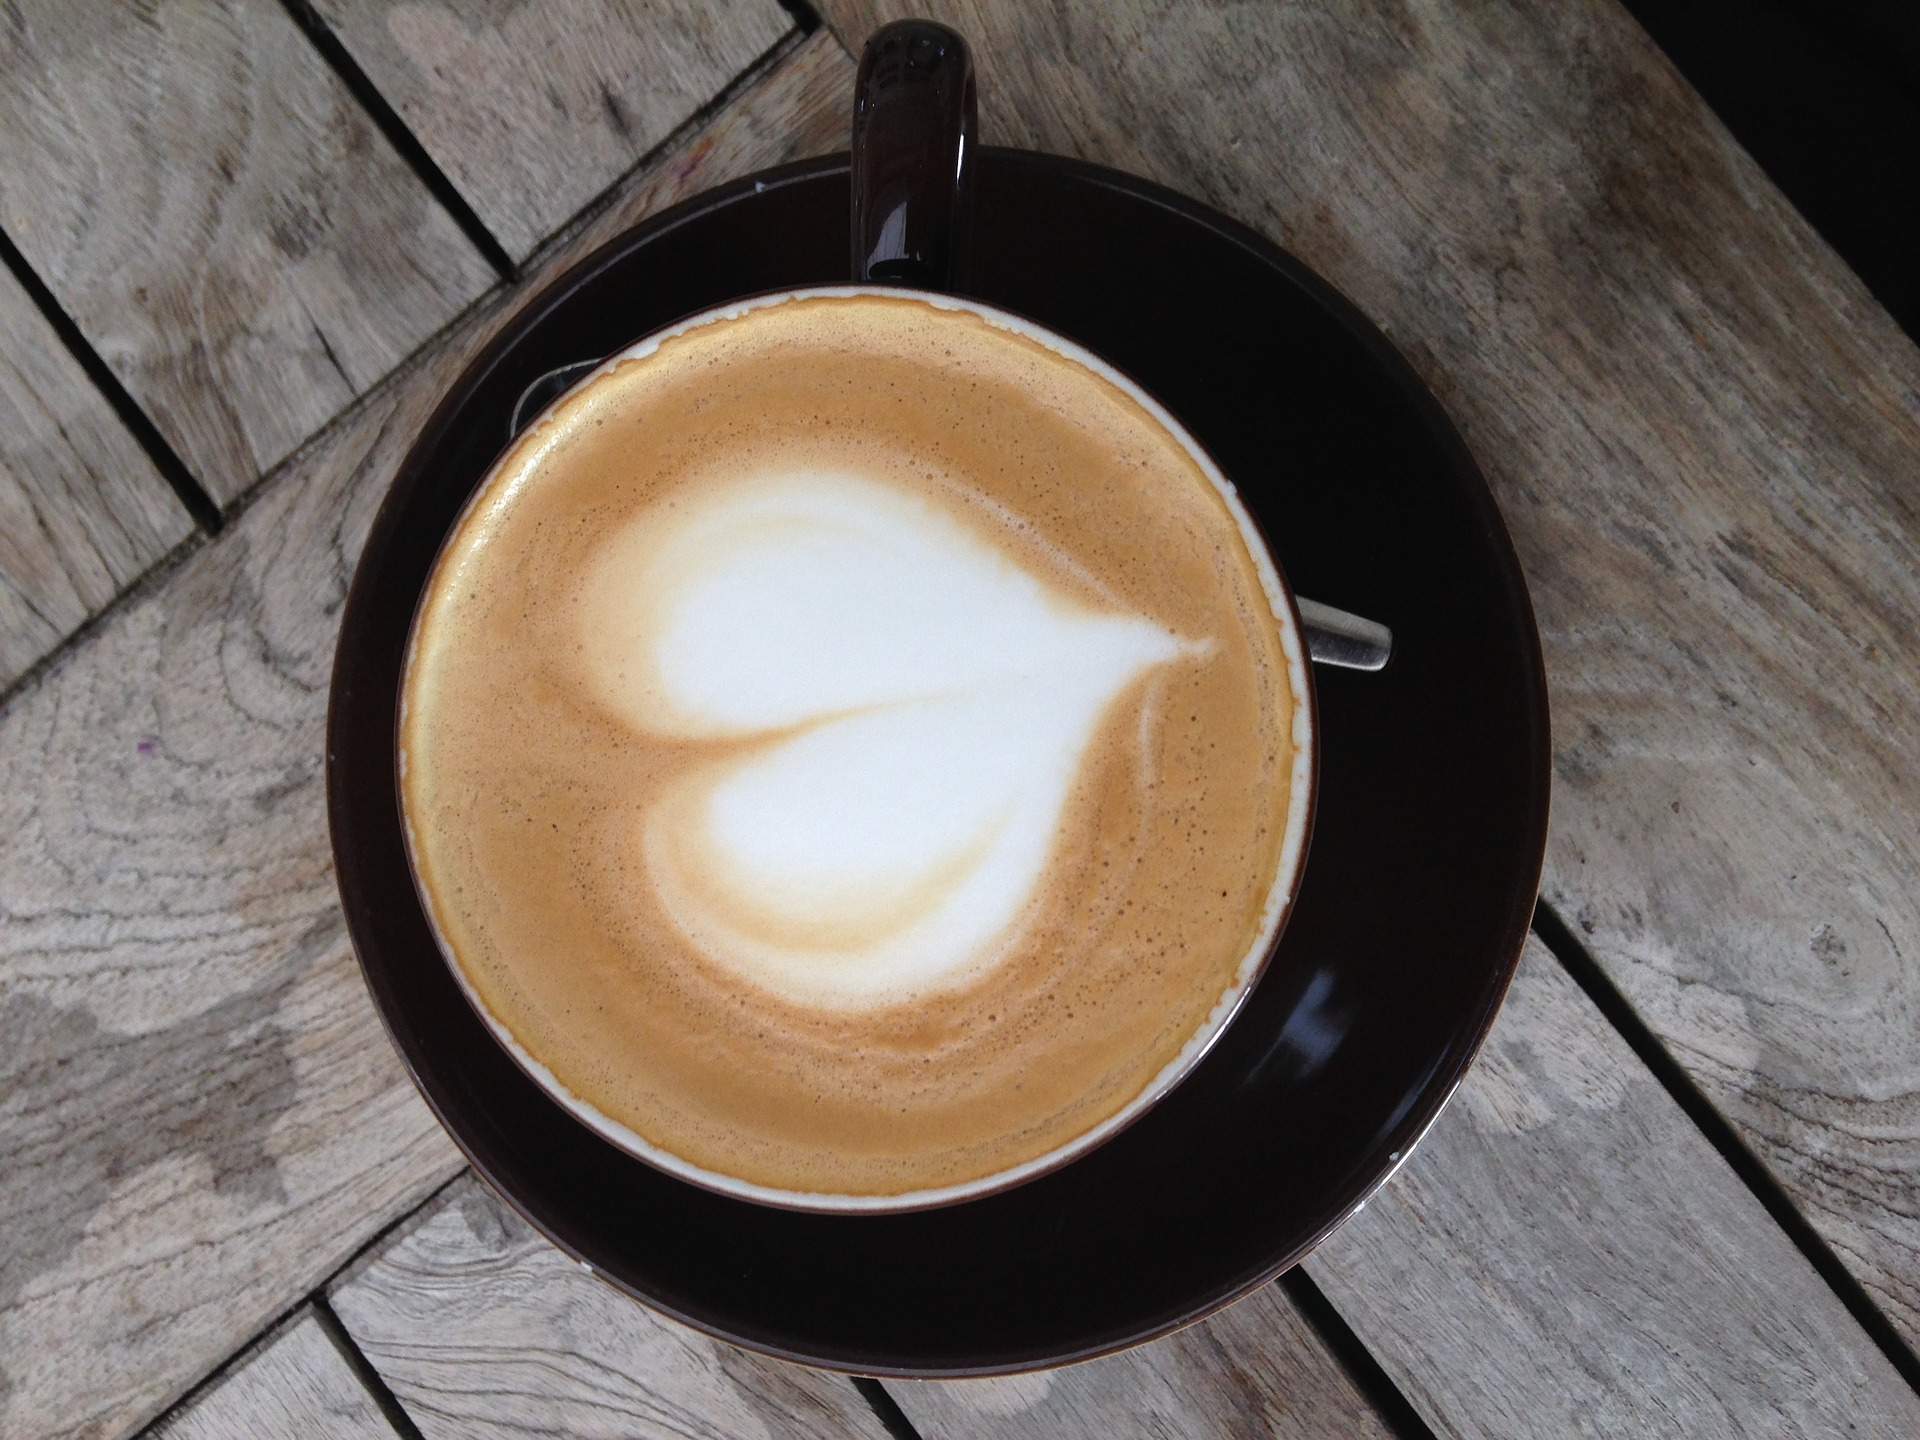 heart coffee voltagebd Image collections